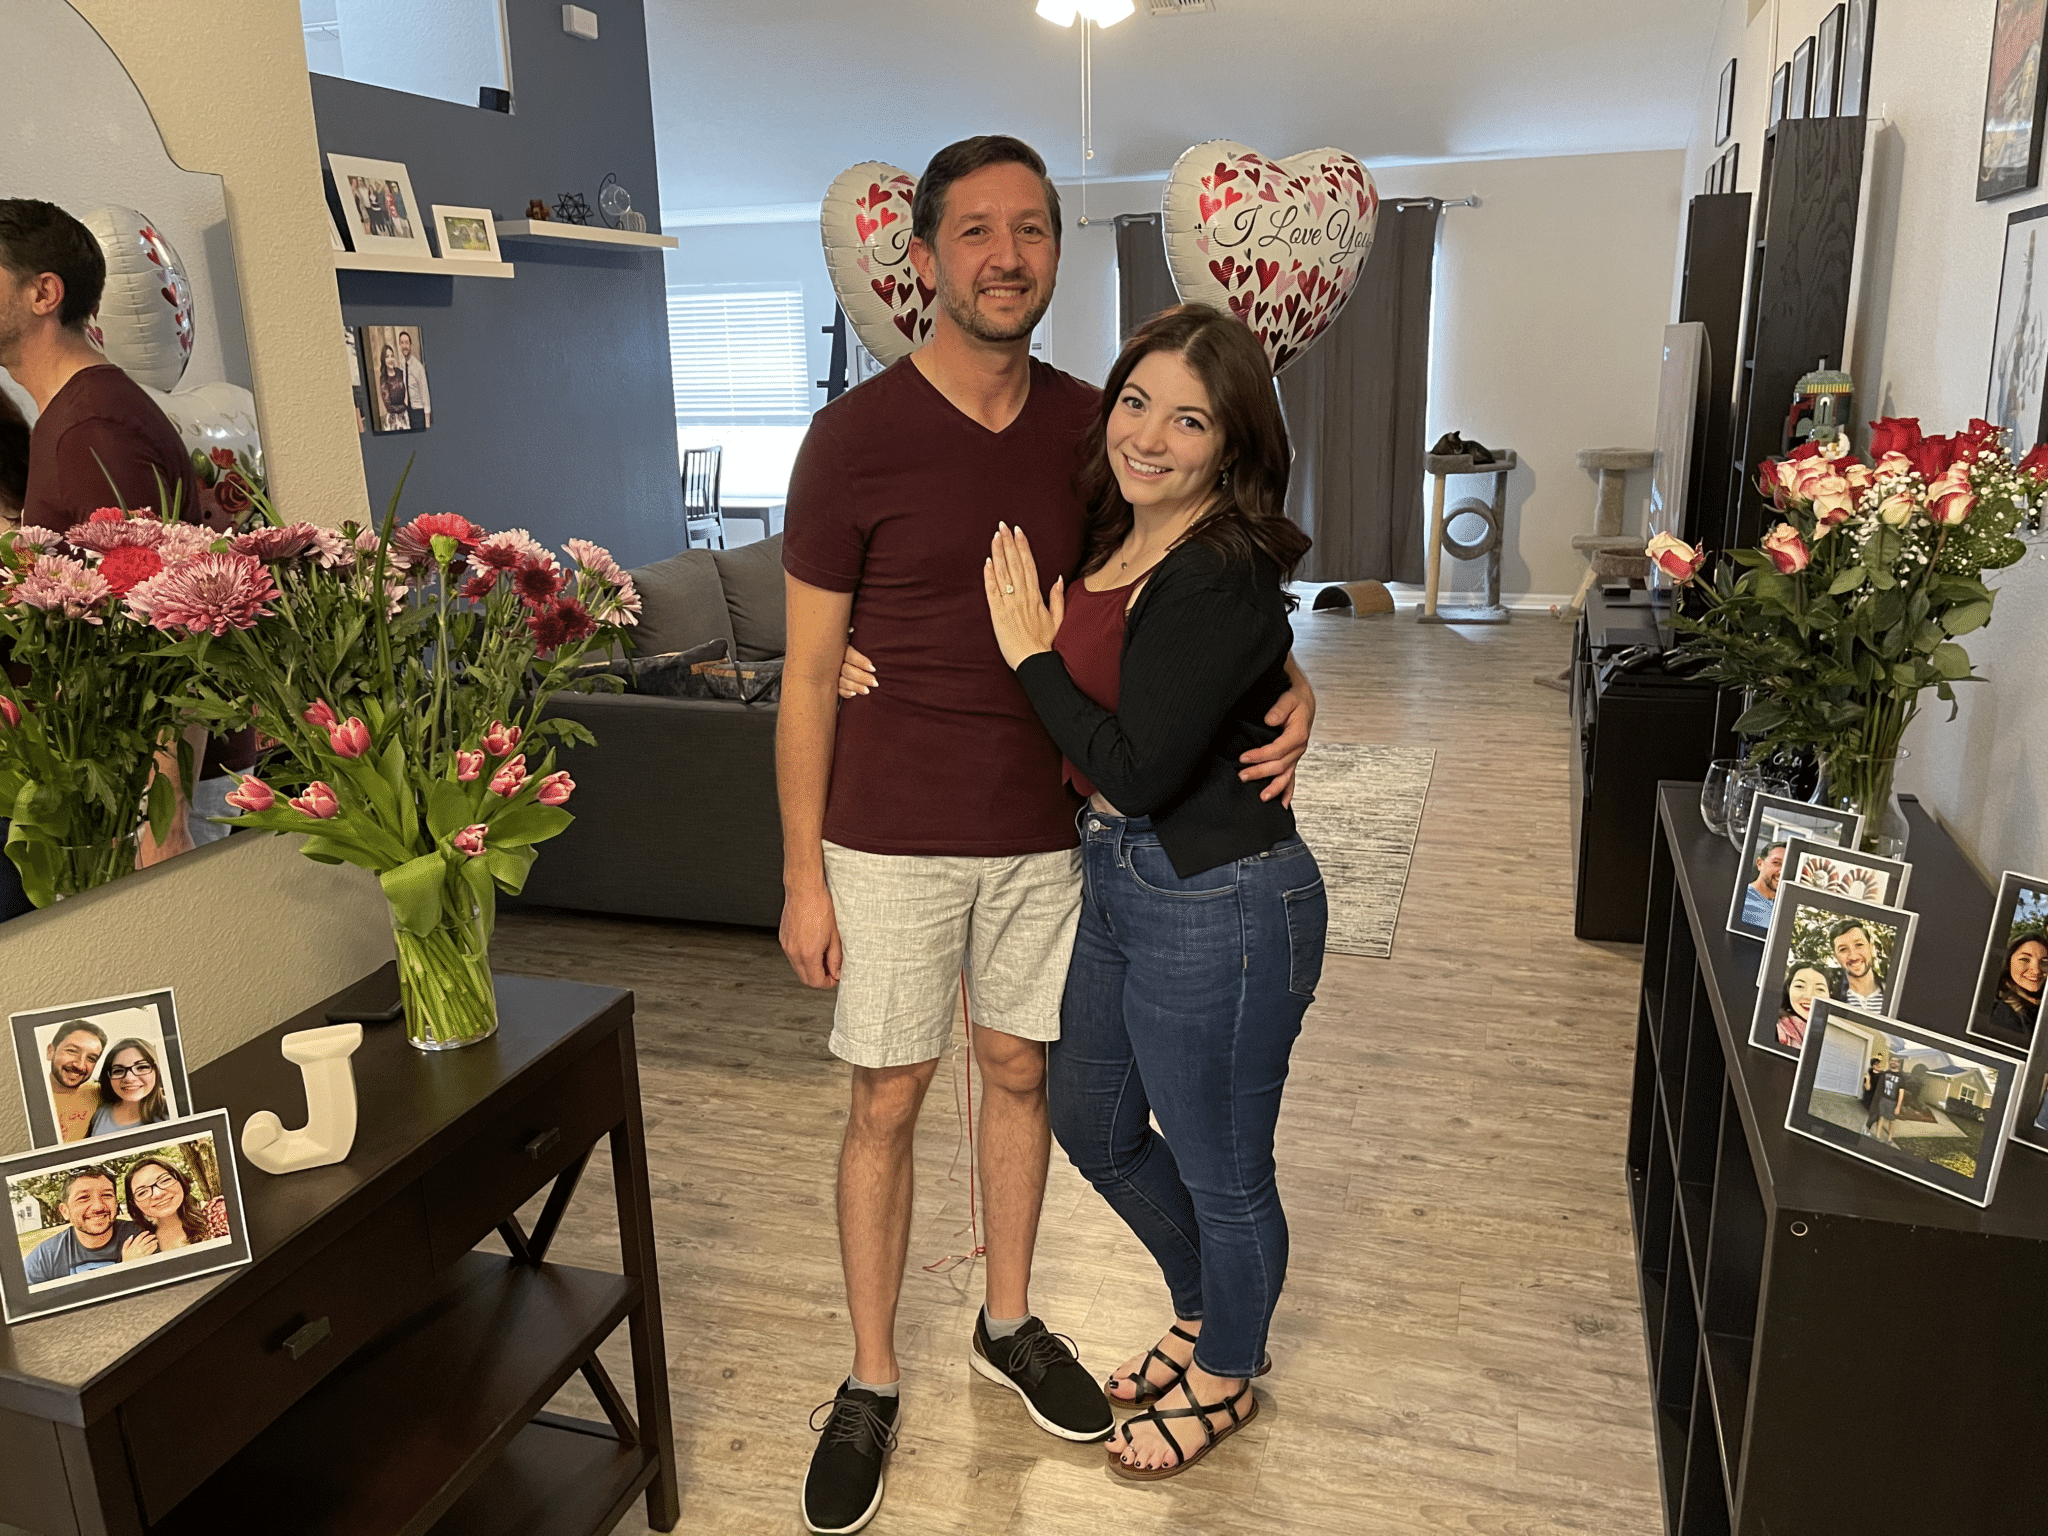 engaged couple posing together and smiling after their central florida at home marriage proposal